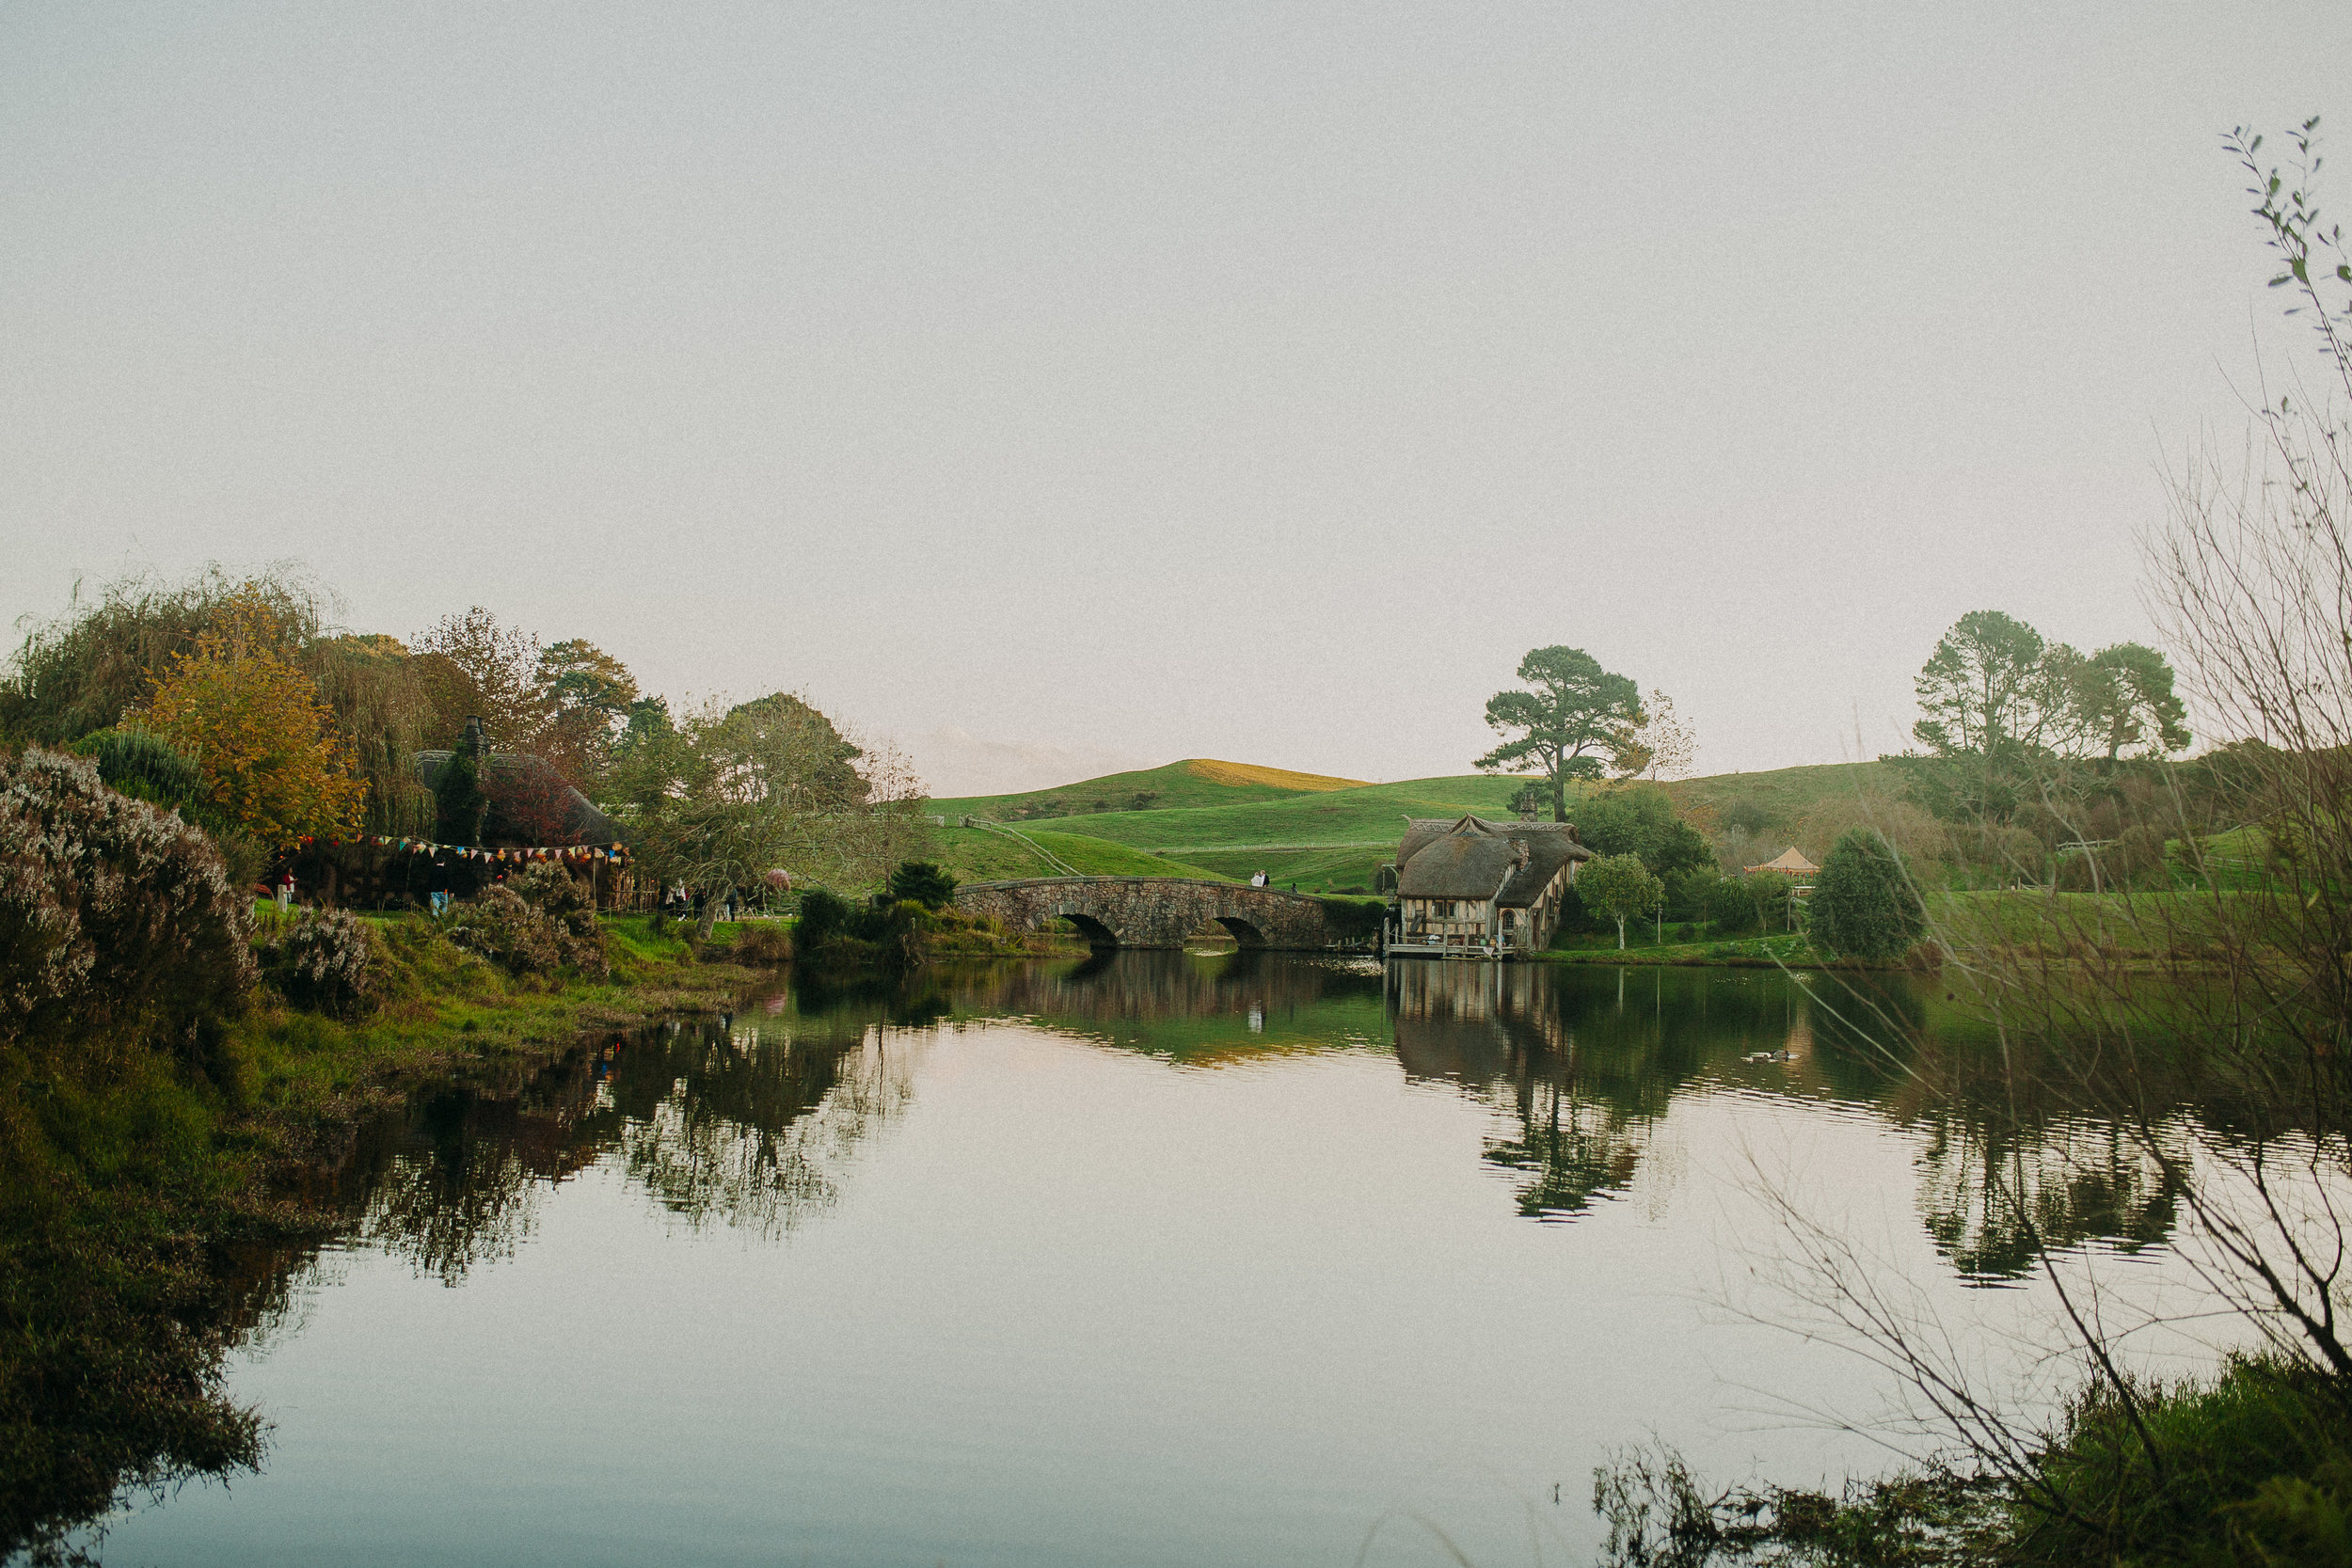 hobbiton-new-zealand-lord-of-the-rings-tour-20.jpg